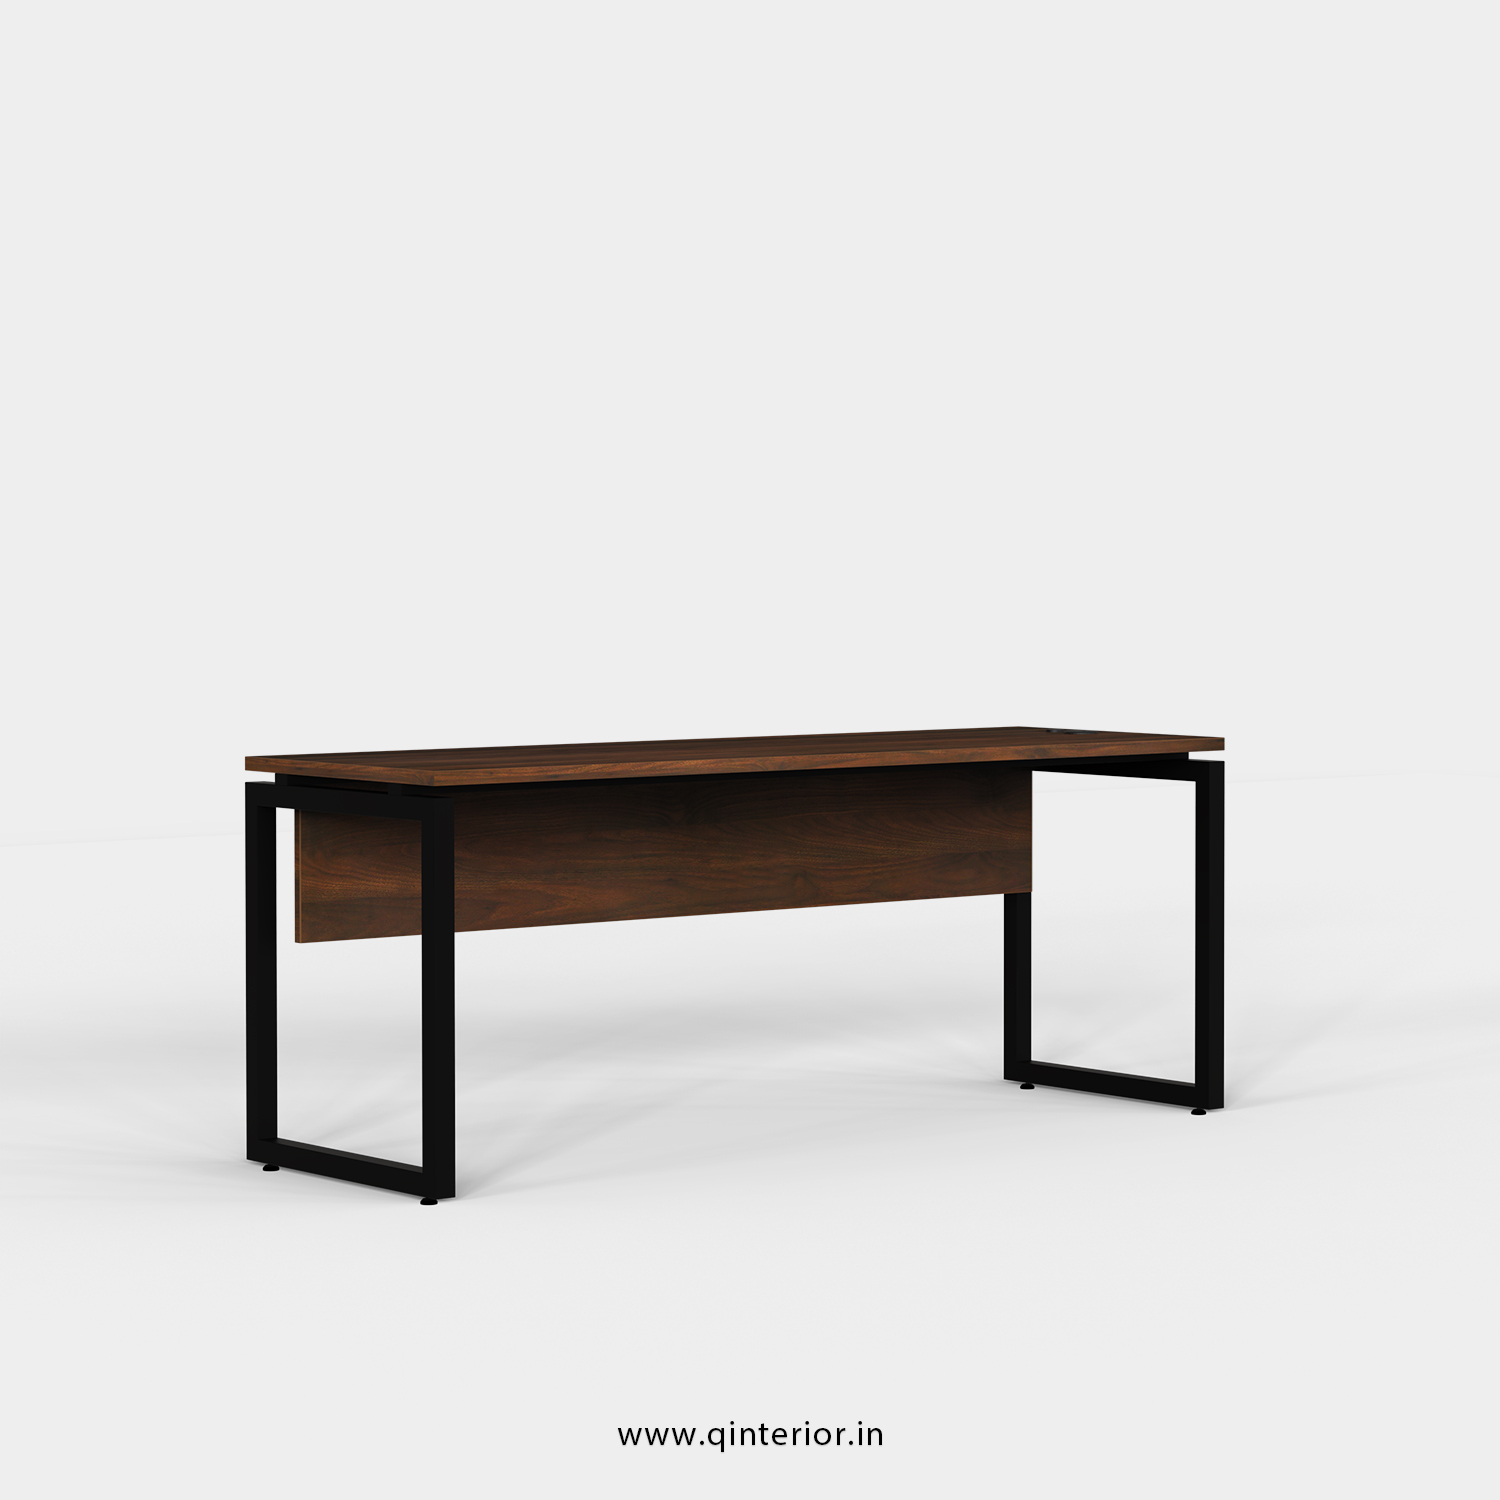 Aaron Executive Table in Walnut Finish - OET001 C1